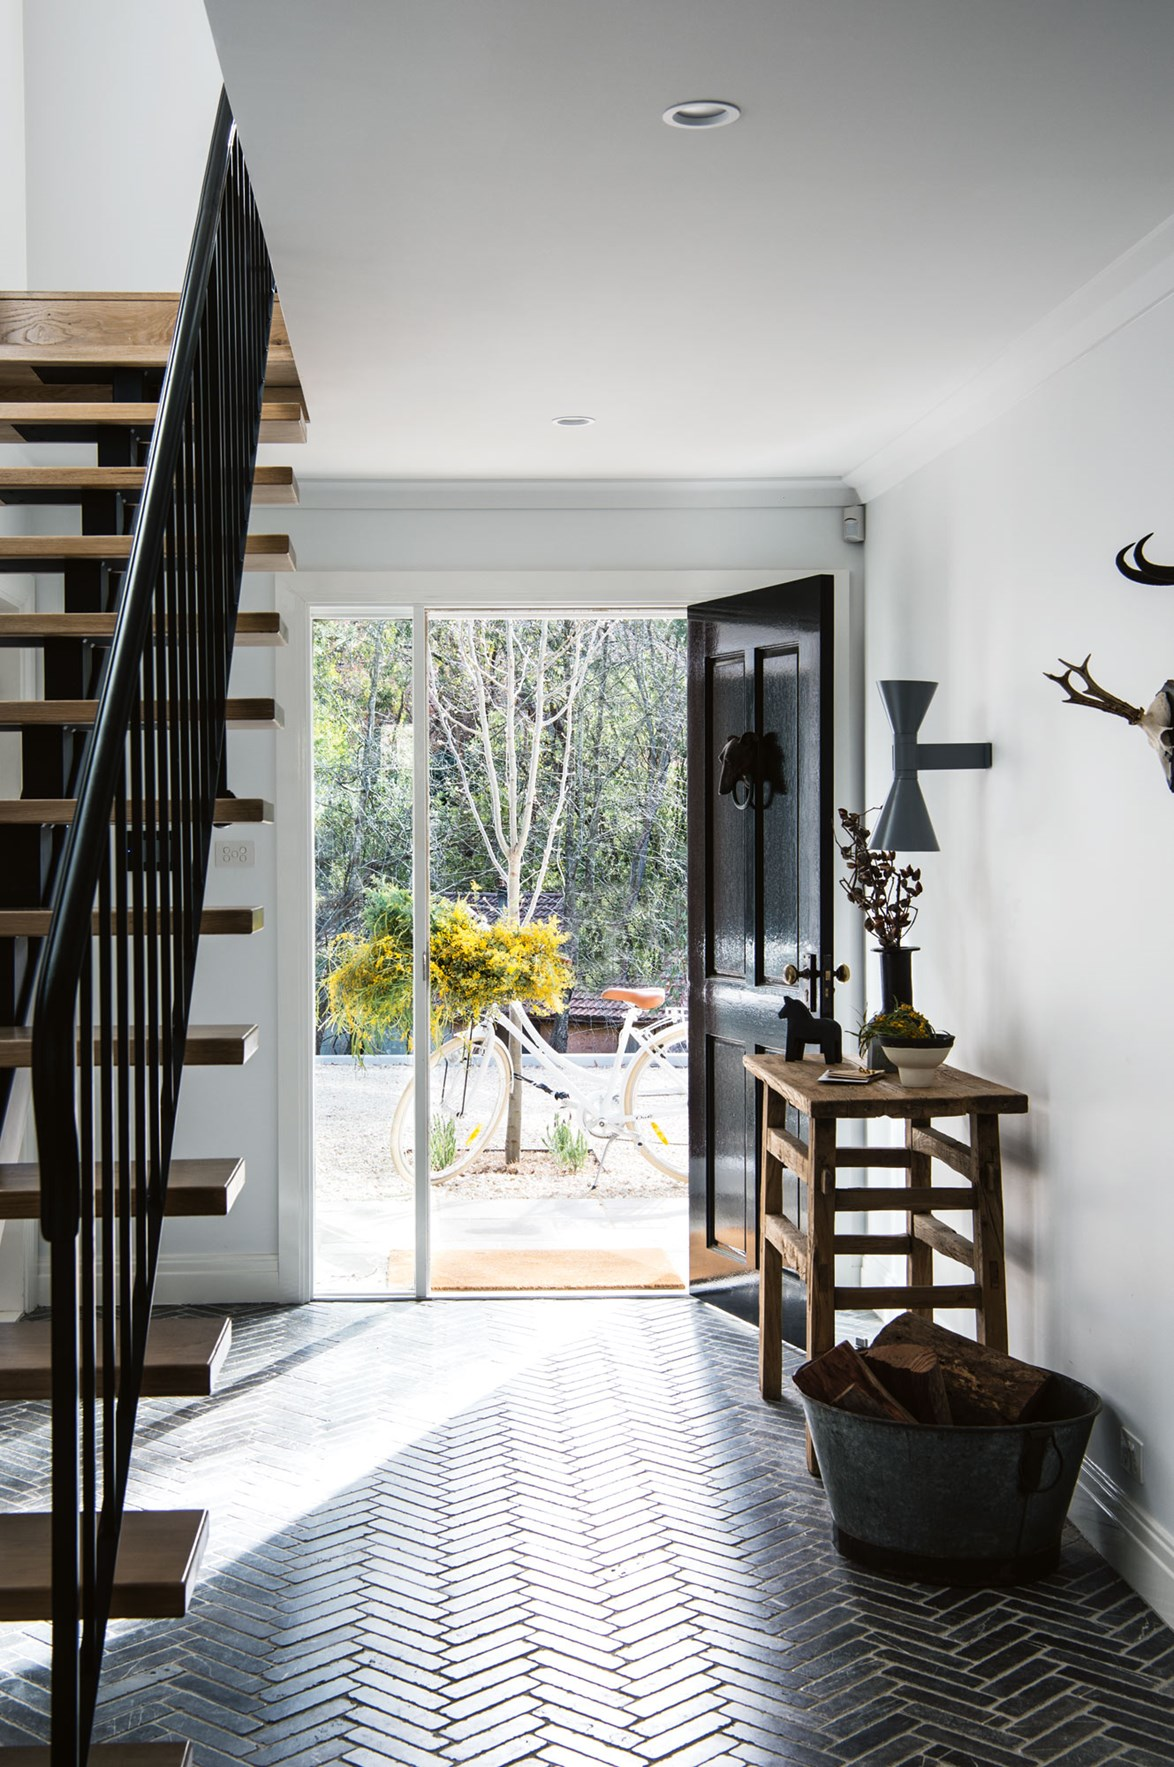 "A bold black front door combined with dark herringbone floor tiles create a sense of drama in the entryway of this [modern Blue Mountains home](https://www.homestolove.com.au/white-light-filled-home-in-the-blue-mountains-nsw-13917|target=""_blank"")."